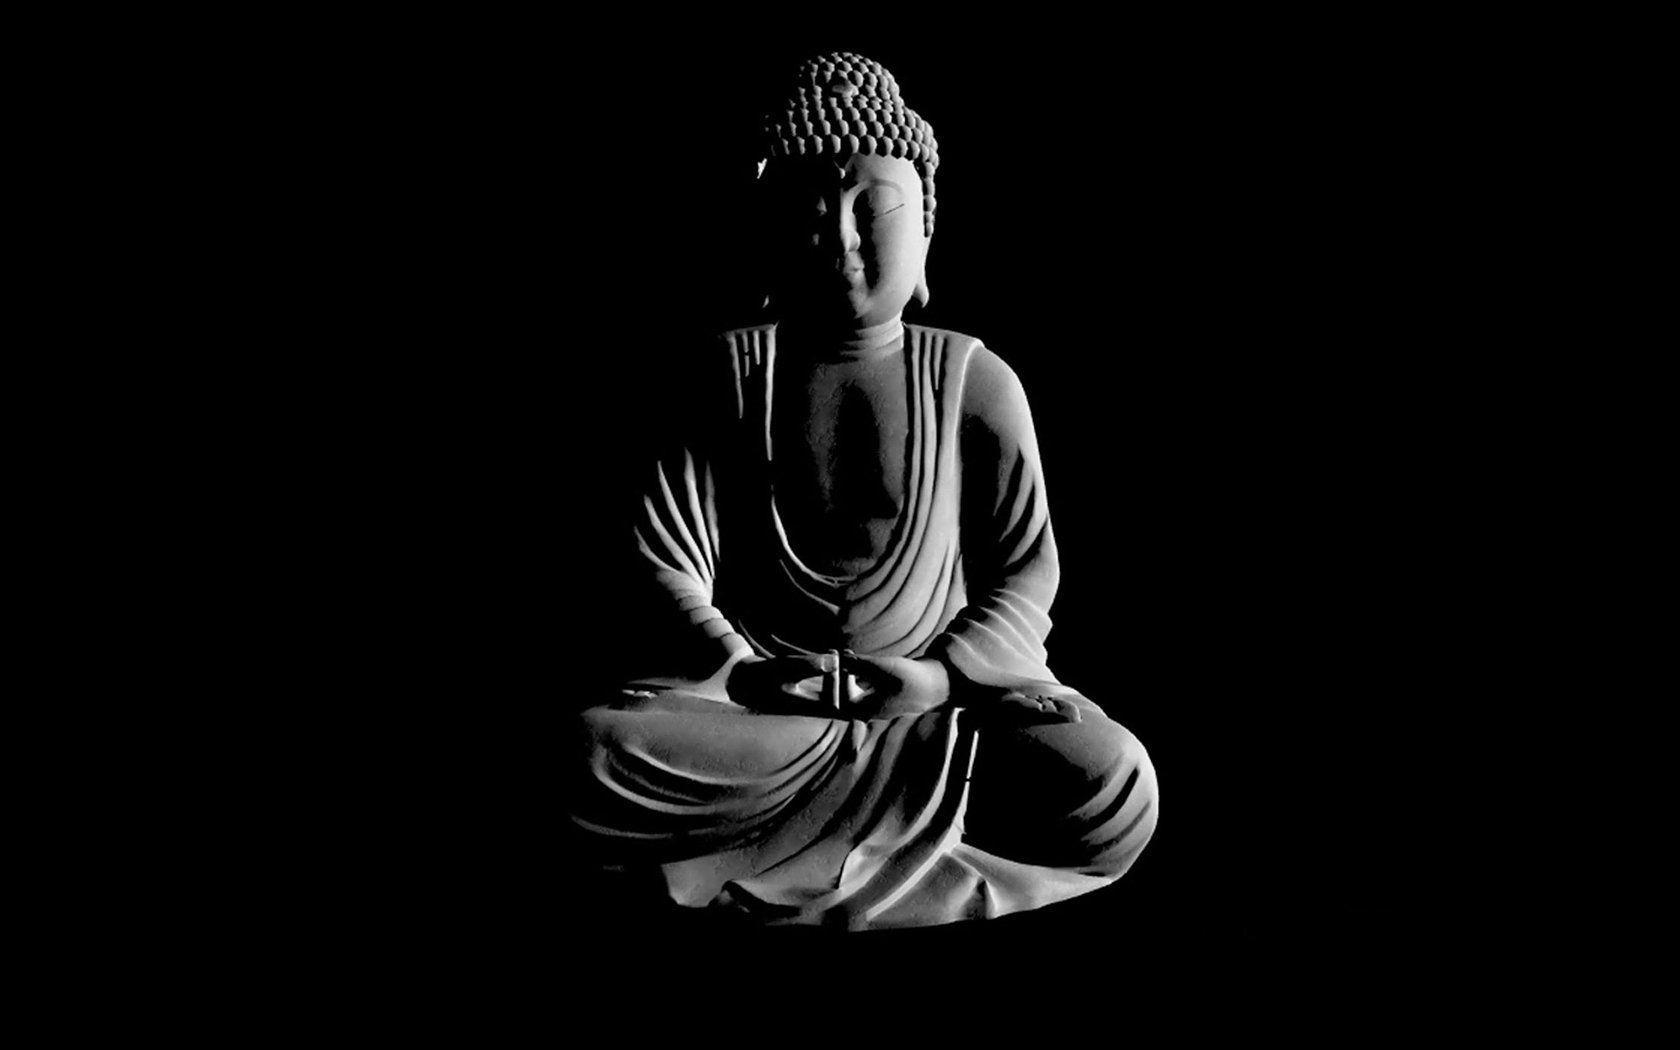 Buddha wallpapers for your desktop free download 4